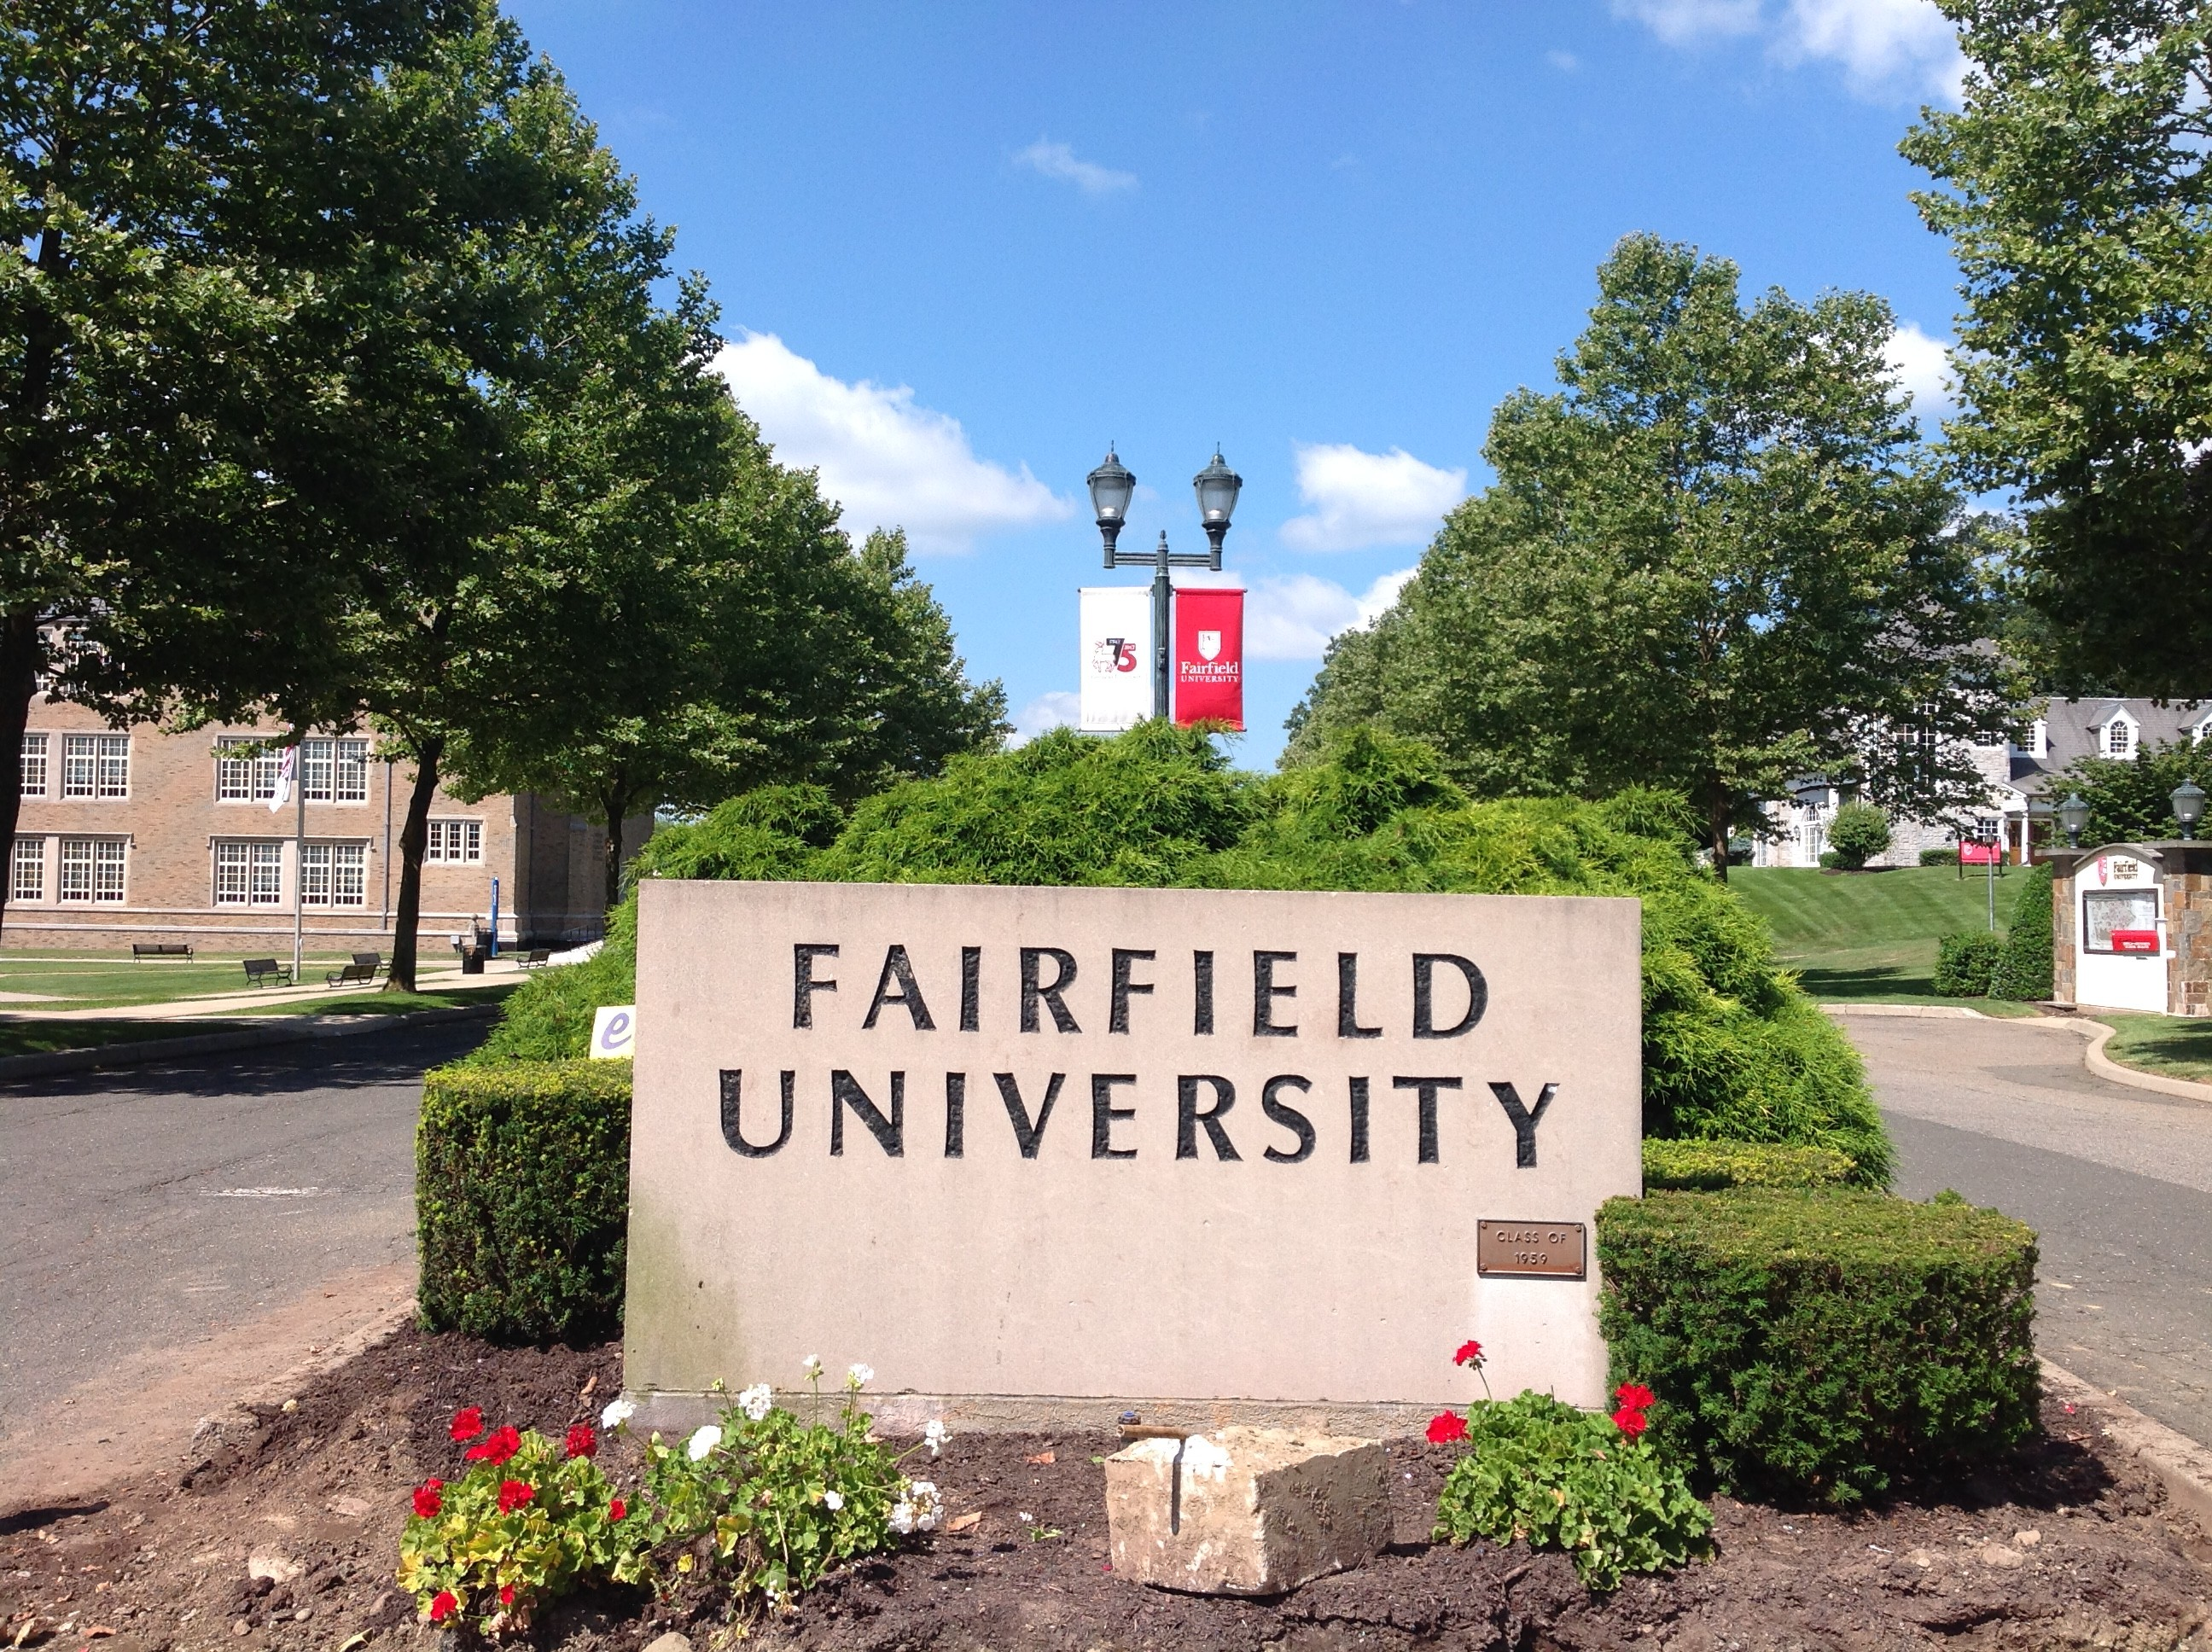 Fairfield University IMG_0224.jpg